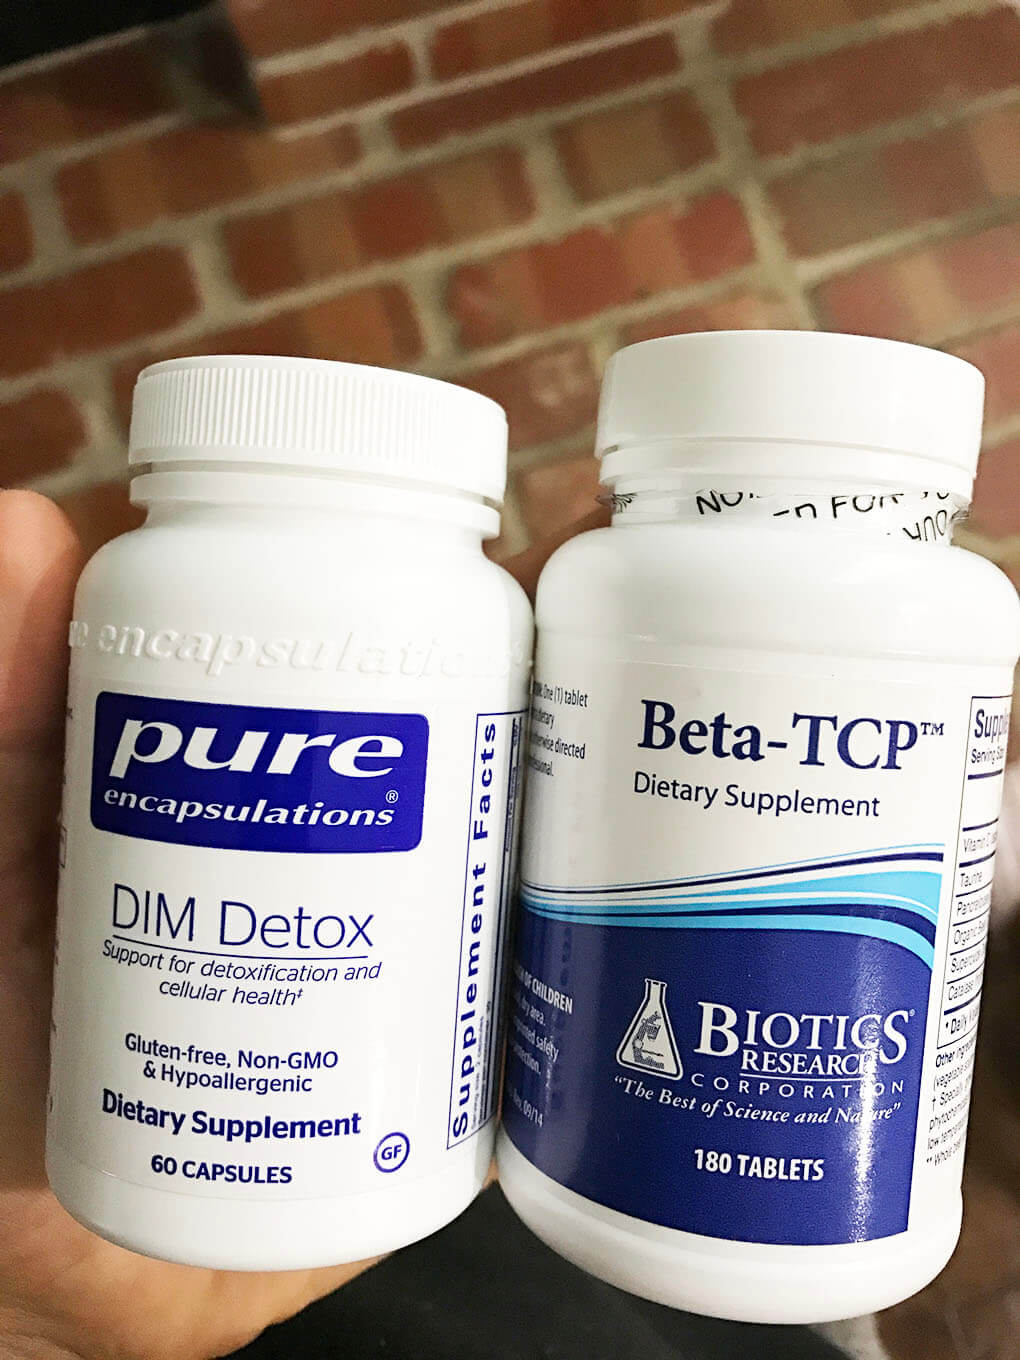 10 Gut and Hormone Supplements sarahkayhoffman.com Beta-TCP and Dim Detox